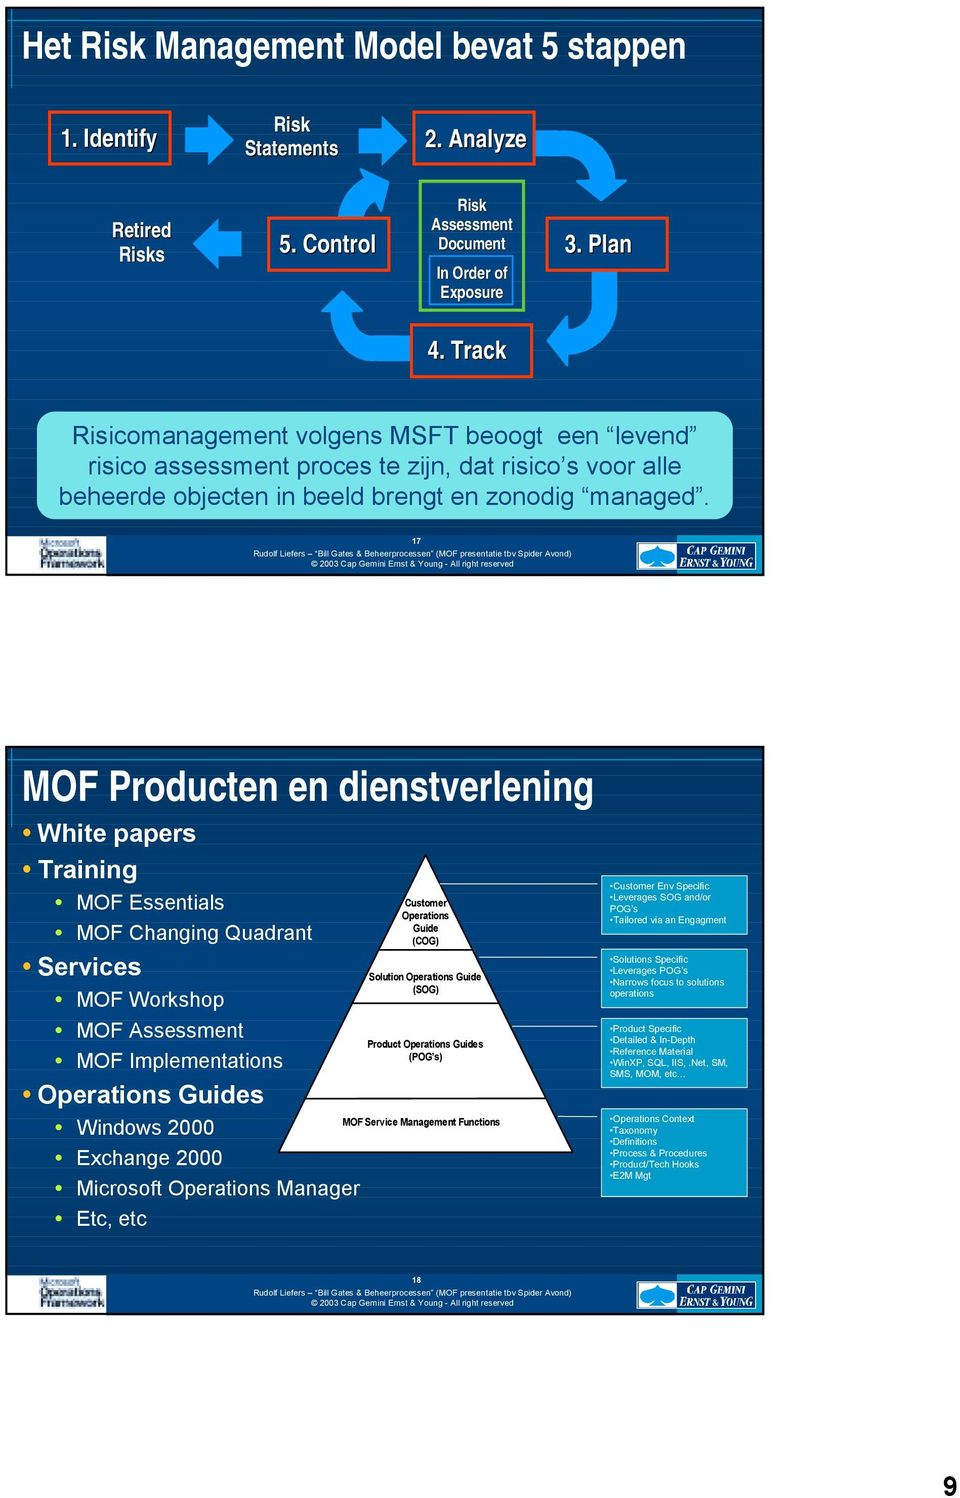 17 MOF Producten en dienstverlening! White papers! Training! MOF Essentials! MOF Changing Quadrant! Services! MOF Workshop! MOF Assessment! MOF Implementations! Guides! Windows 2000! Exchange 2000!